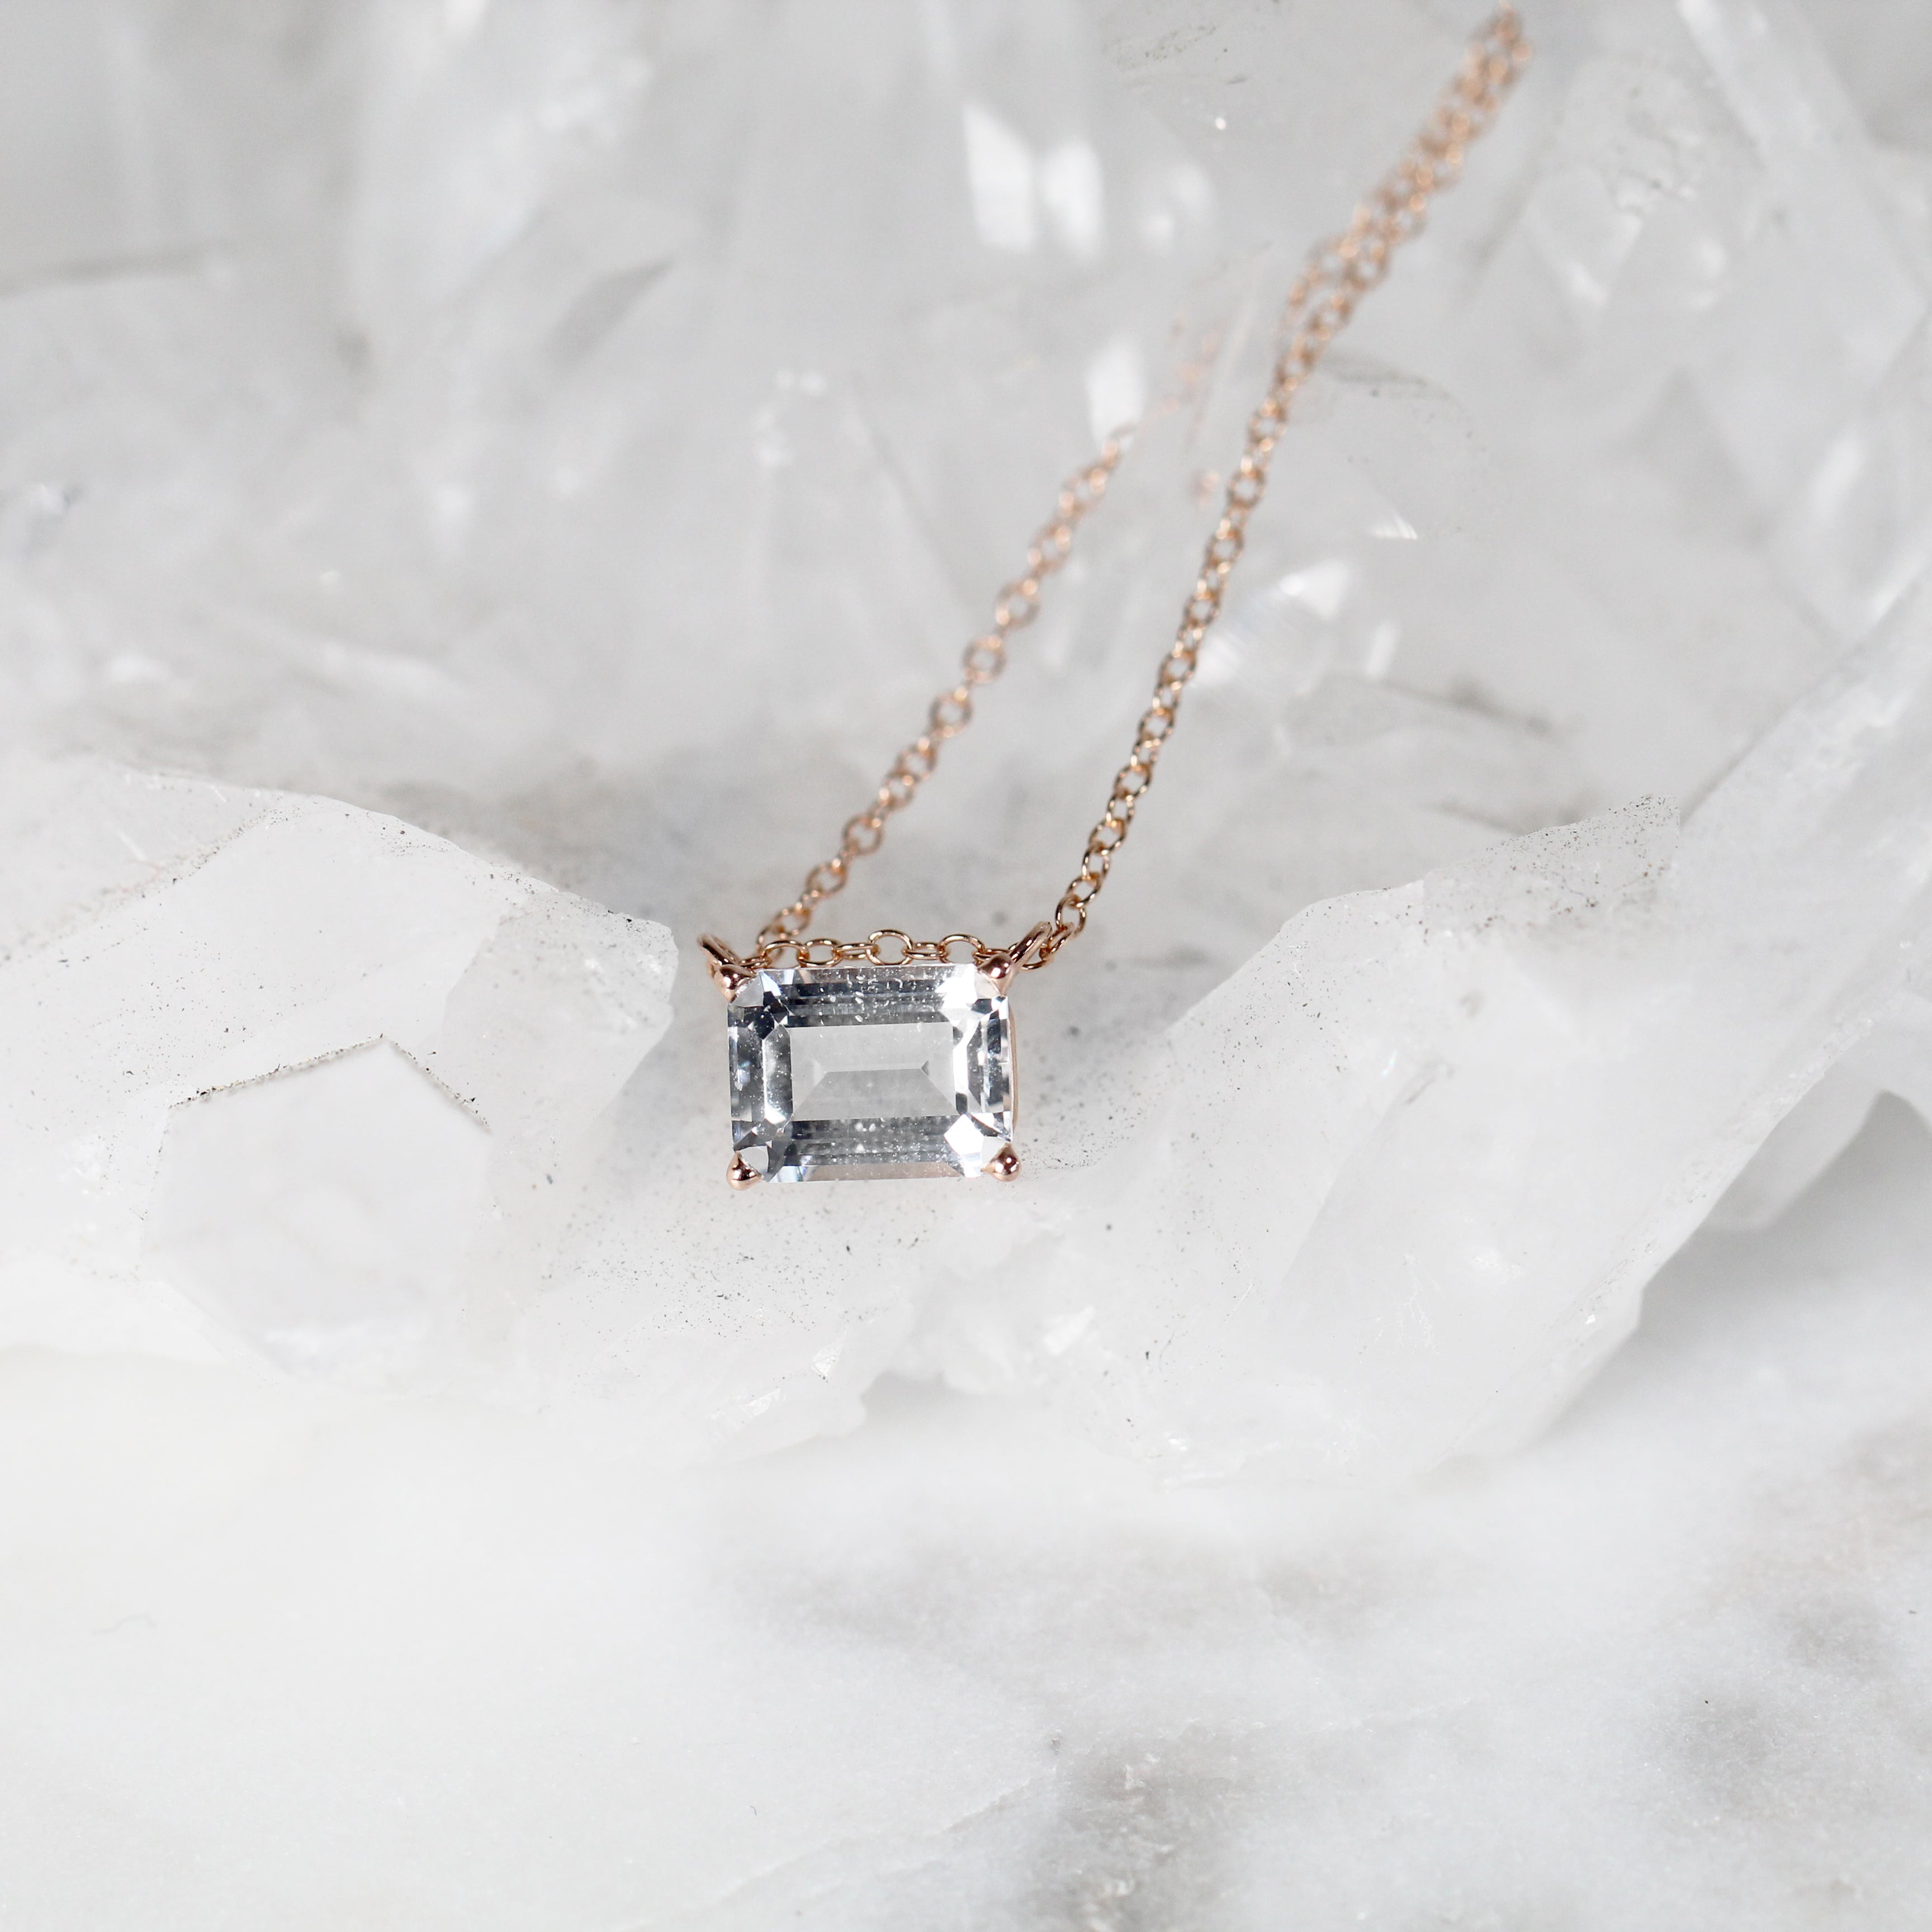 Emerald Cut Clear White Sapphire Pendant Necklace - 14k Gold of your choice - Celestial Diamonds ® by Midwinter Co.